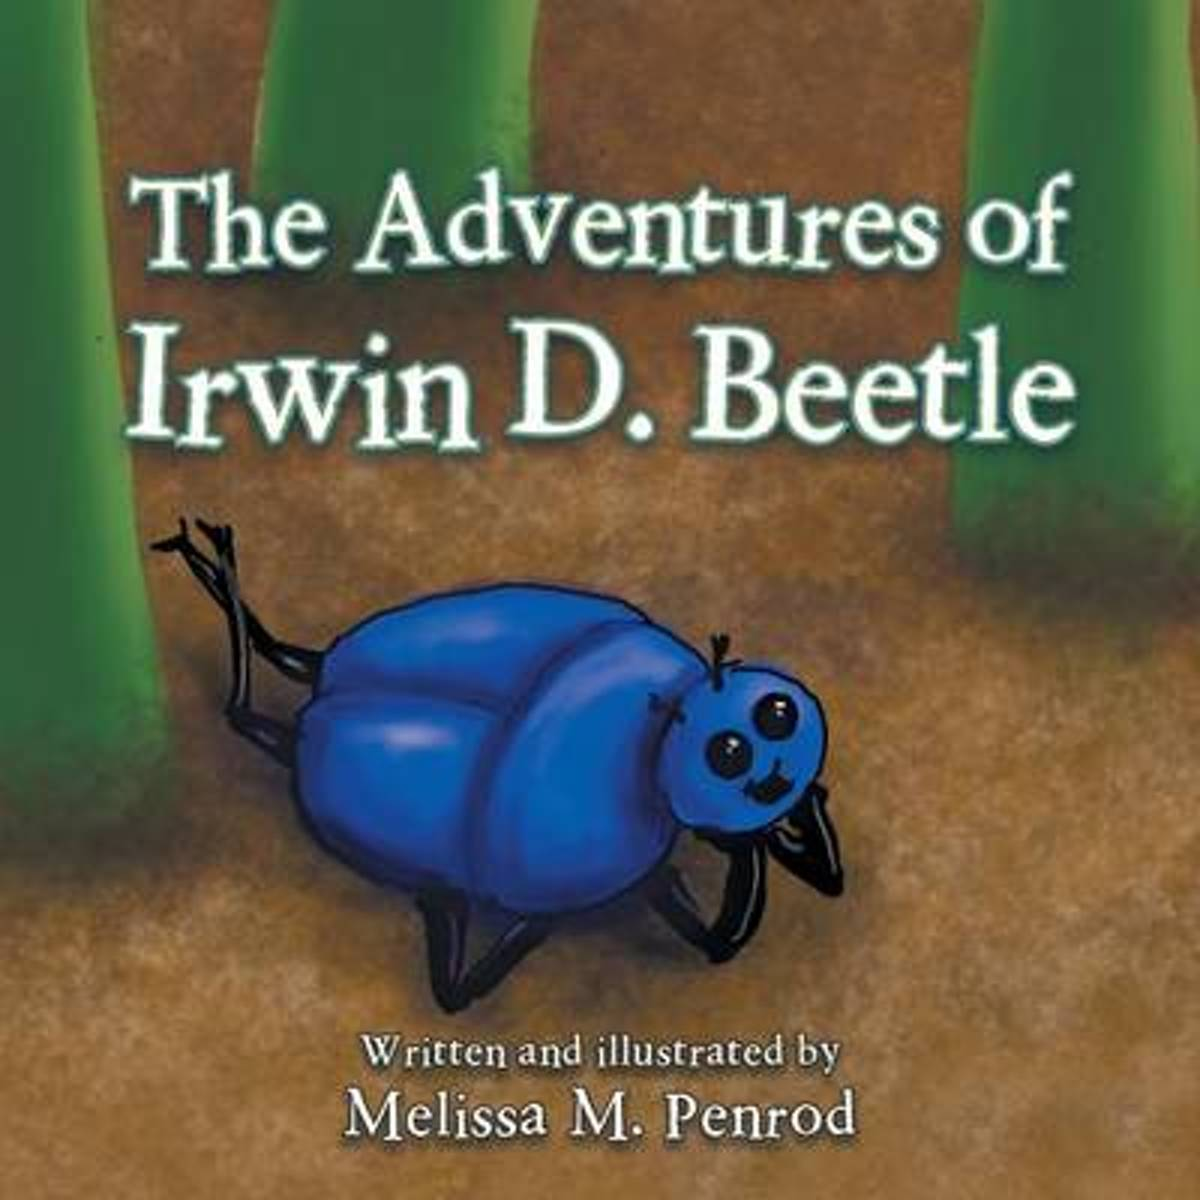 The Adventures of Irwin D. Beetle